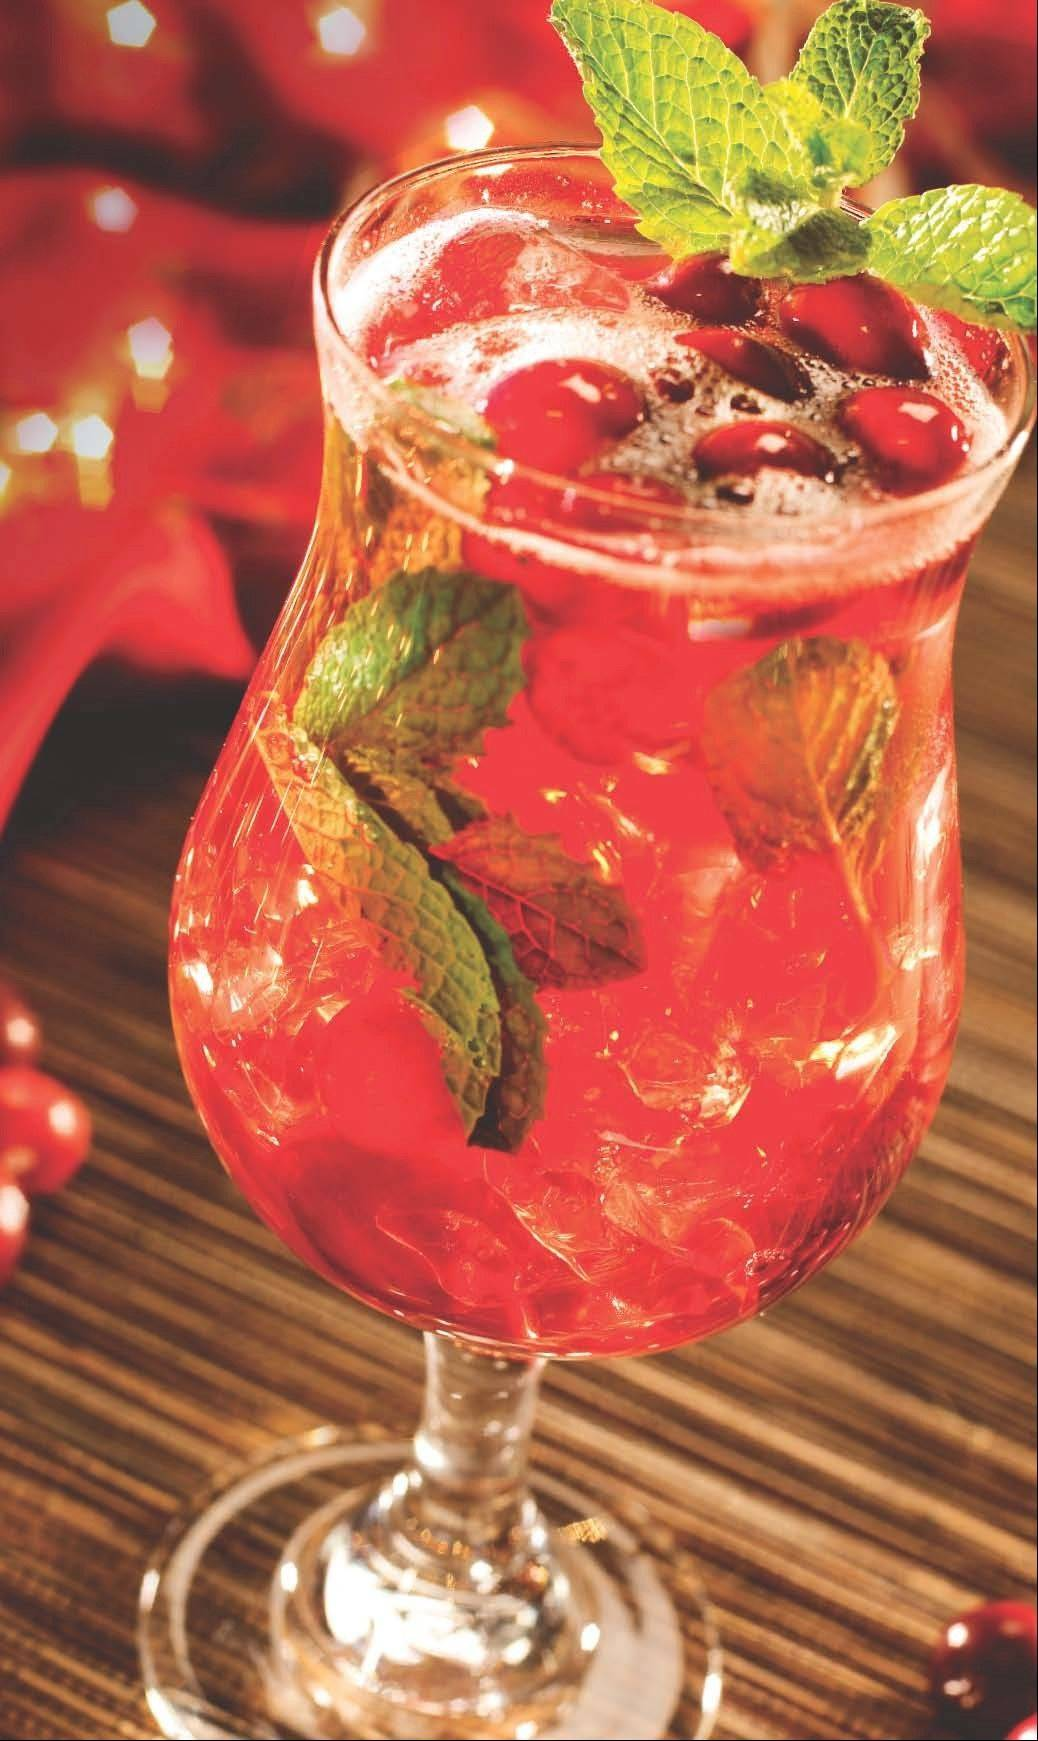 Benihana's spiced cranberry mojito is available throughout November.